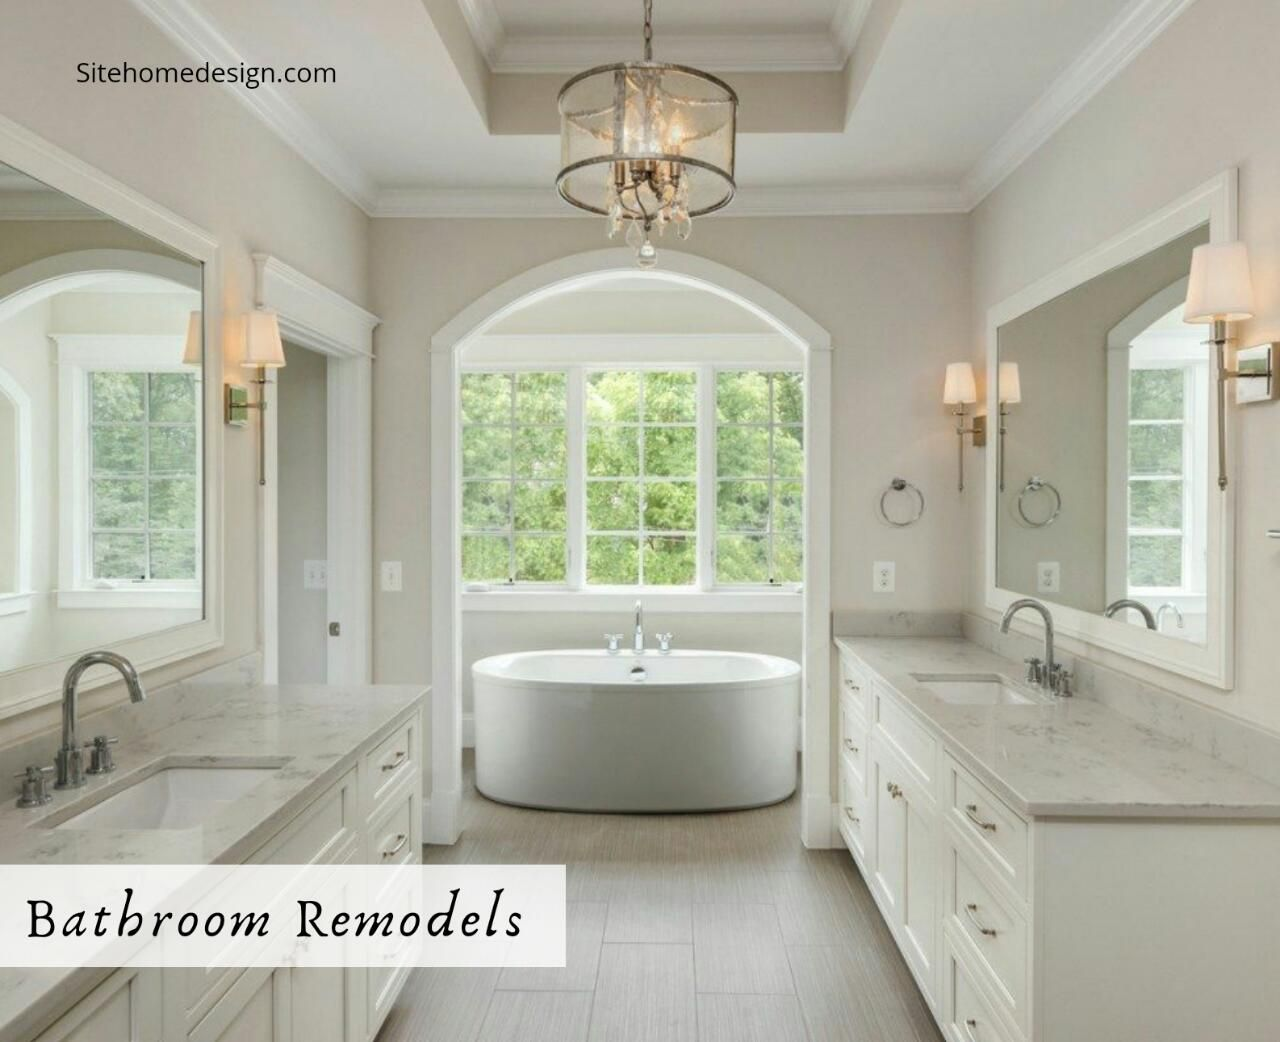 21 Ideas of Bathroom Remodels for Small Areas You'll Wish ... on Small Area Bathroom Ideas  id=99266